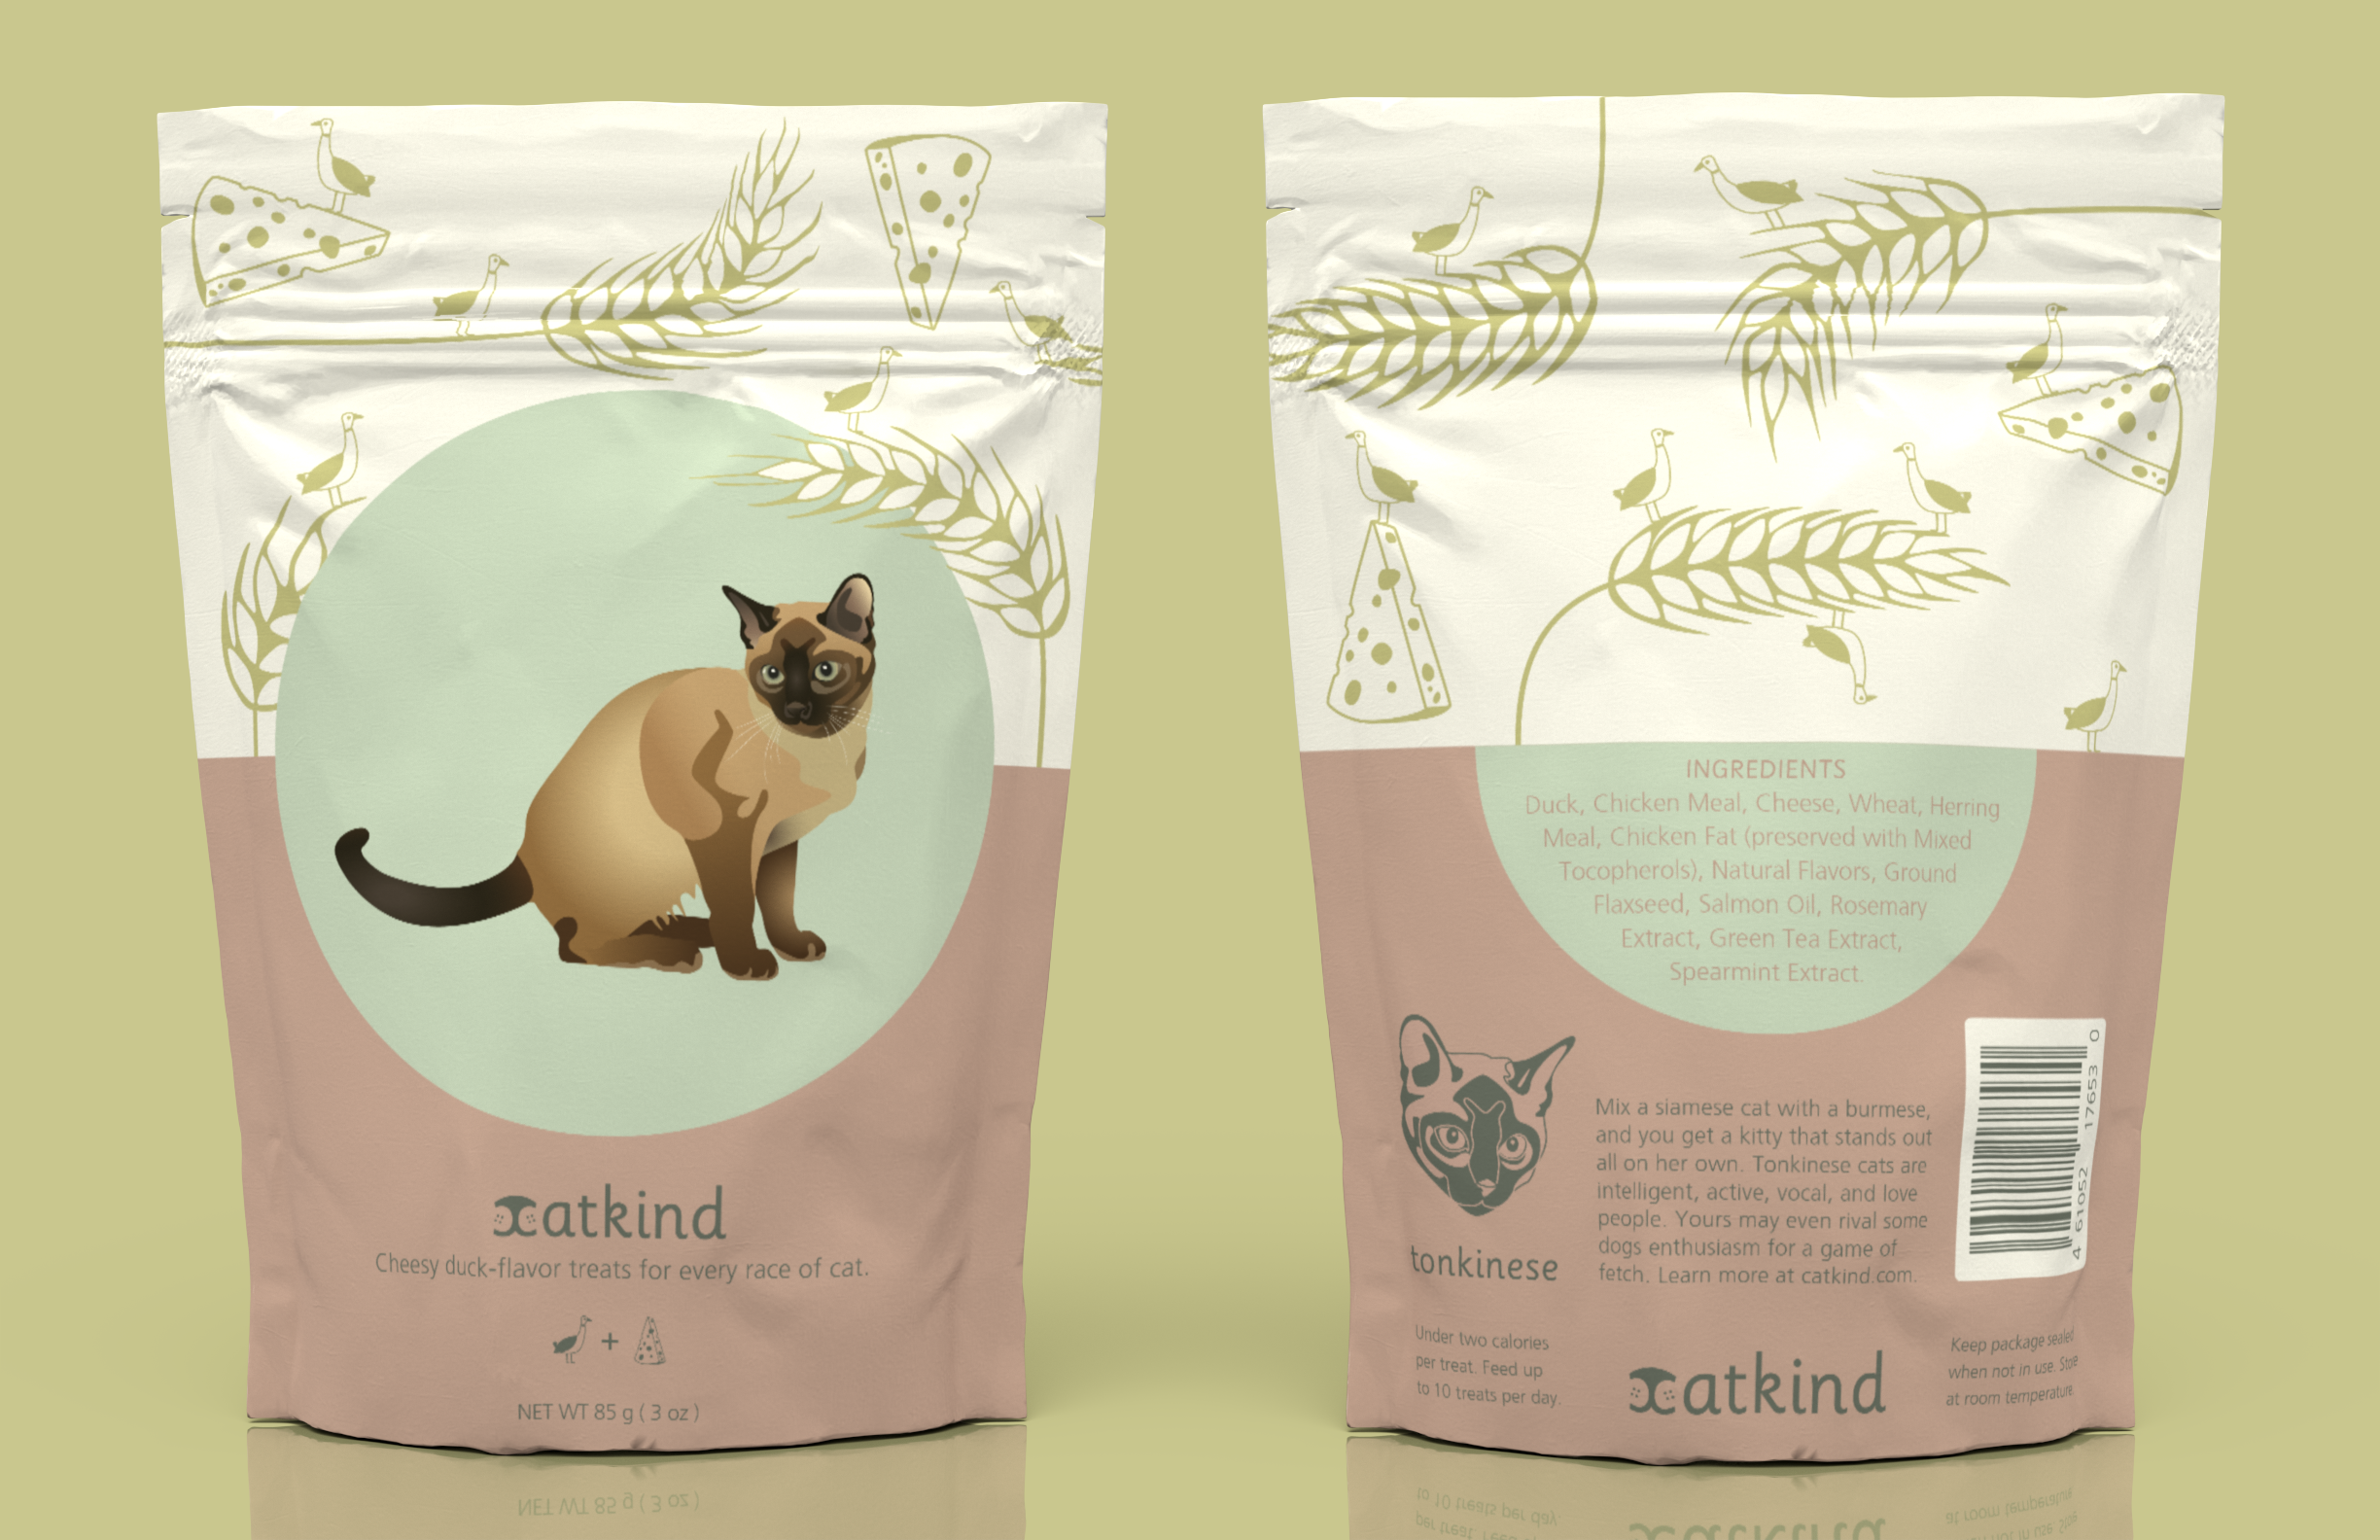 tonkinese cat.png